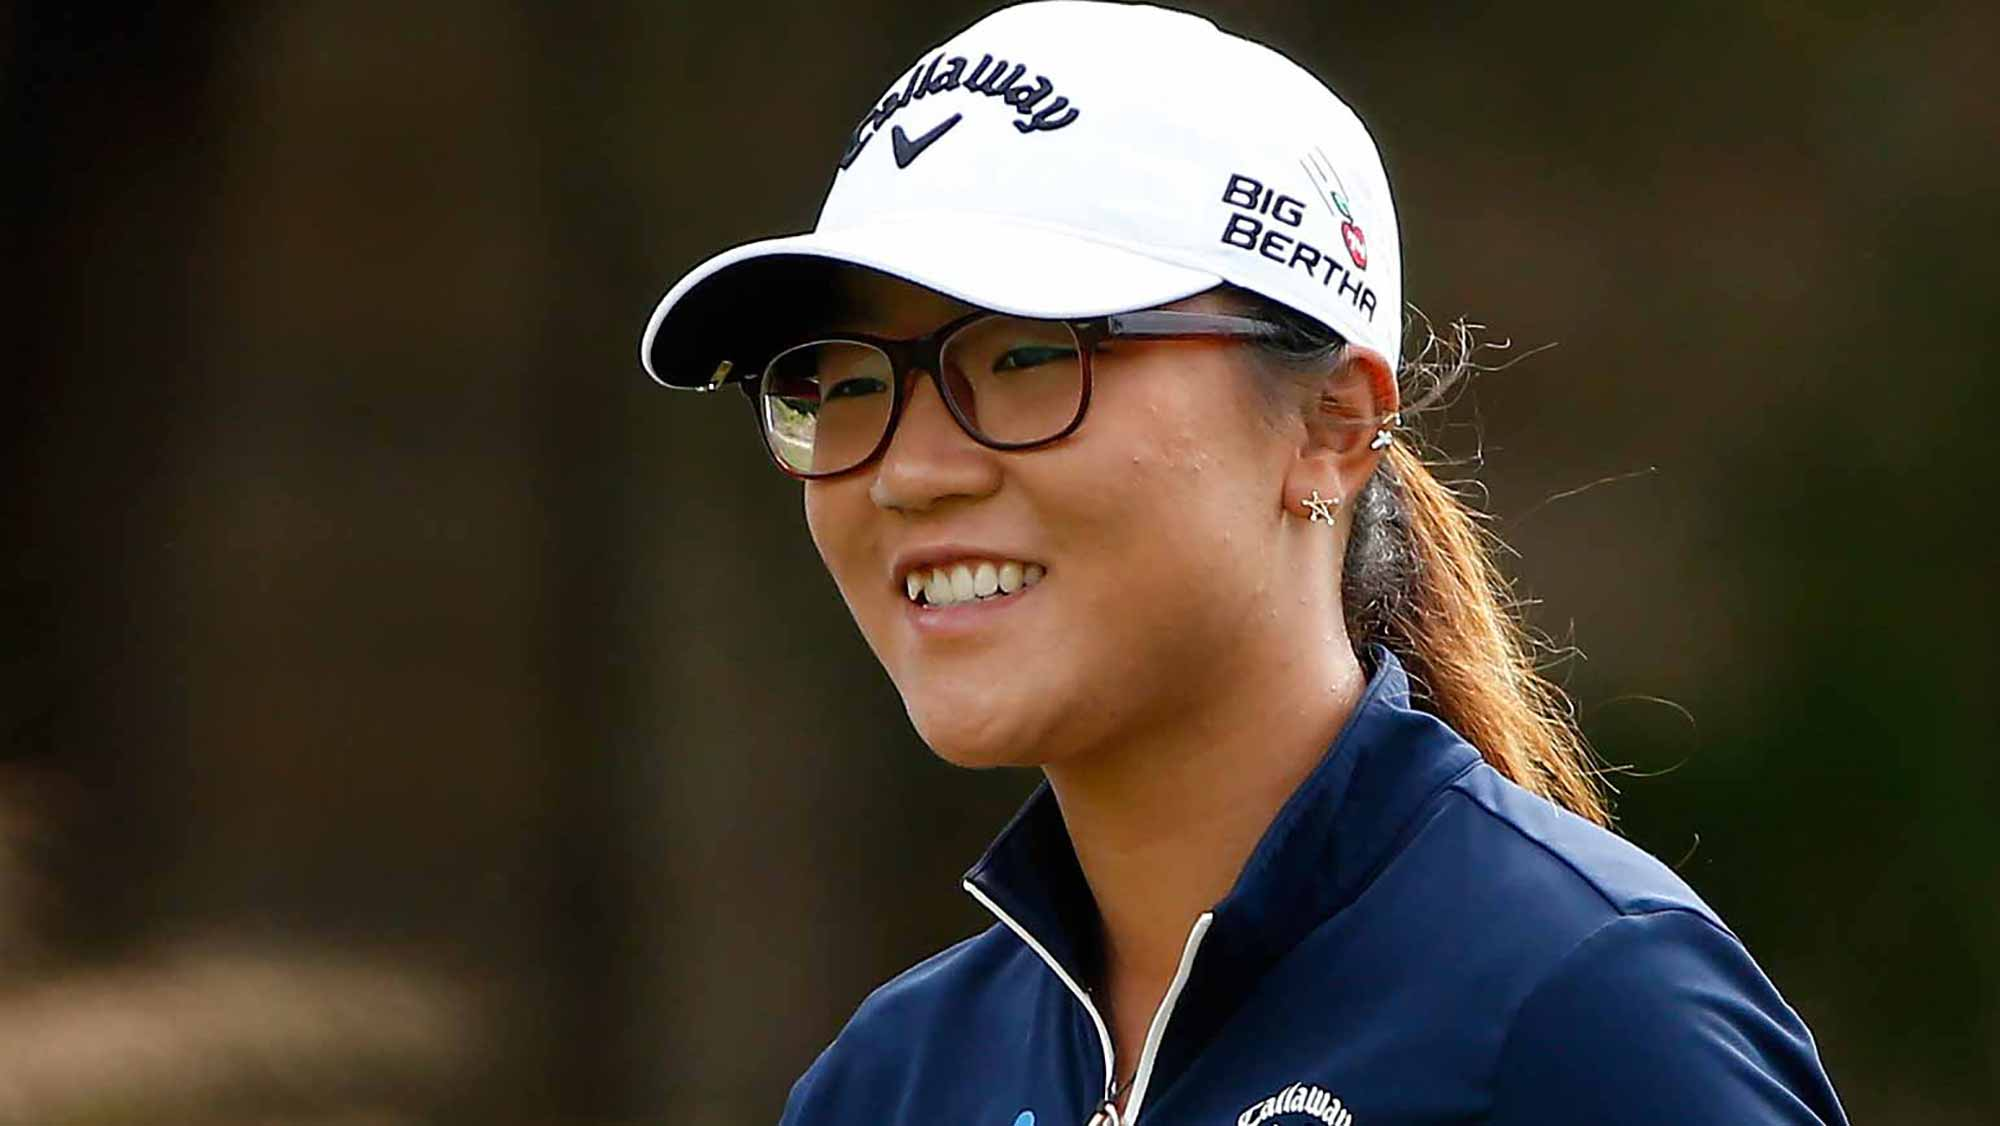 Lydia Ko during the third round of the 2014 CME Group Tour Championship